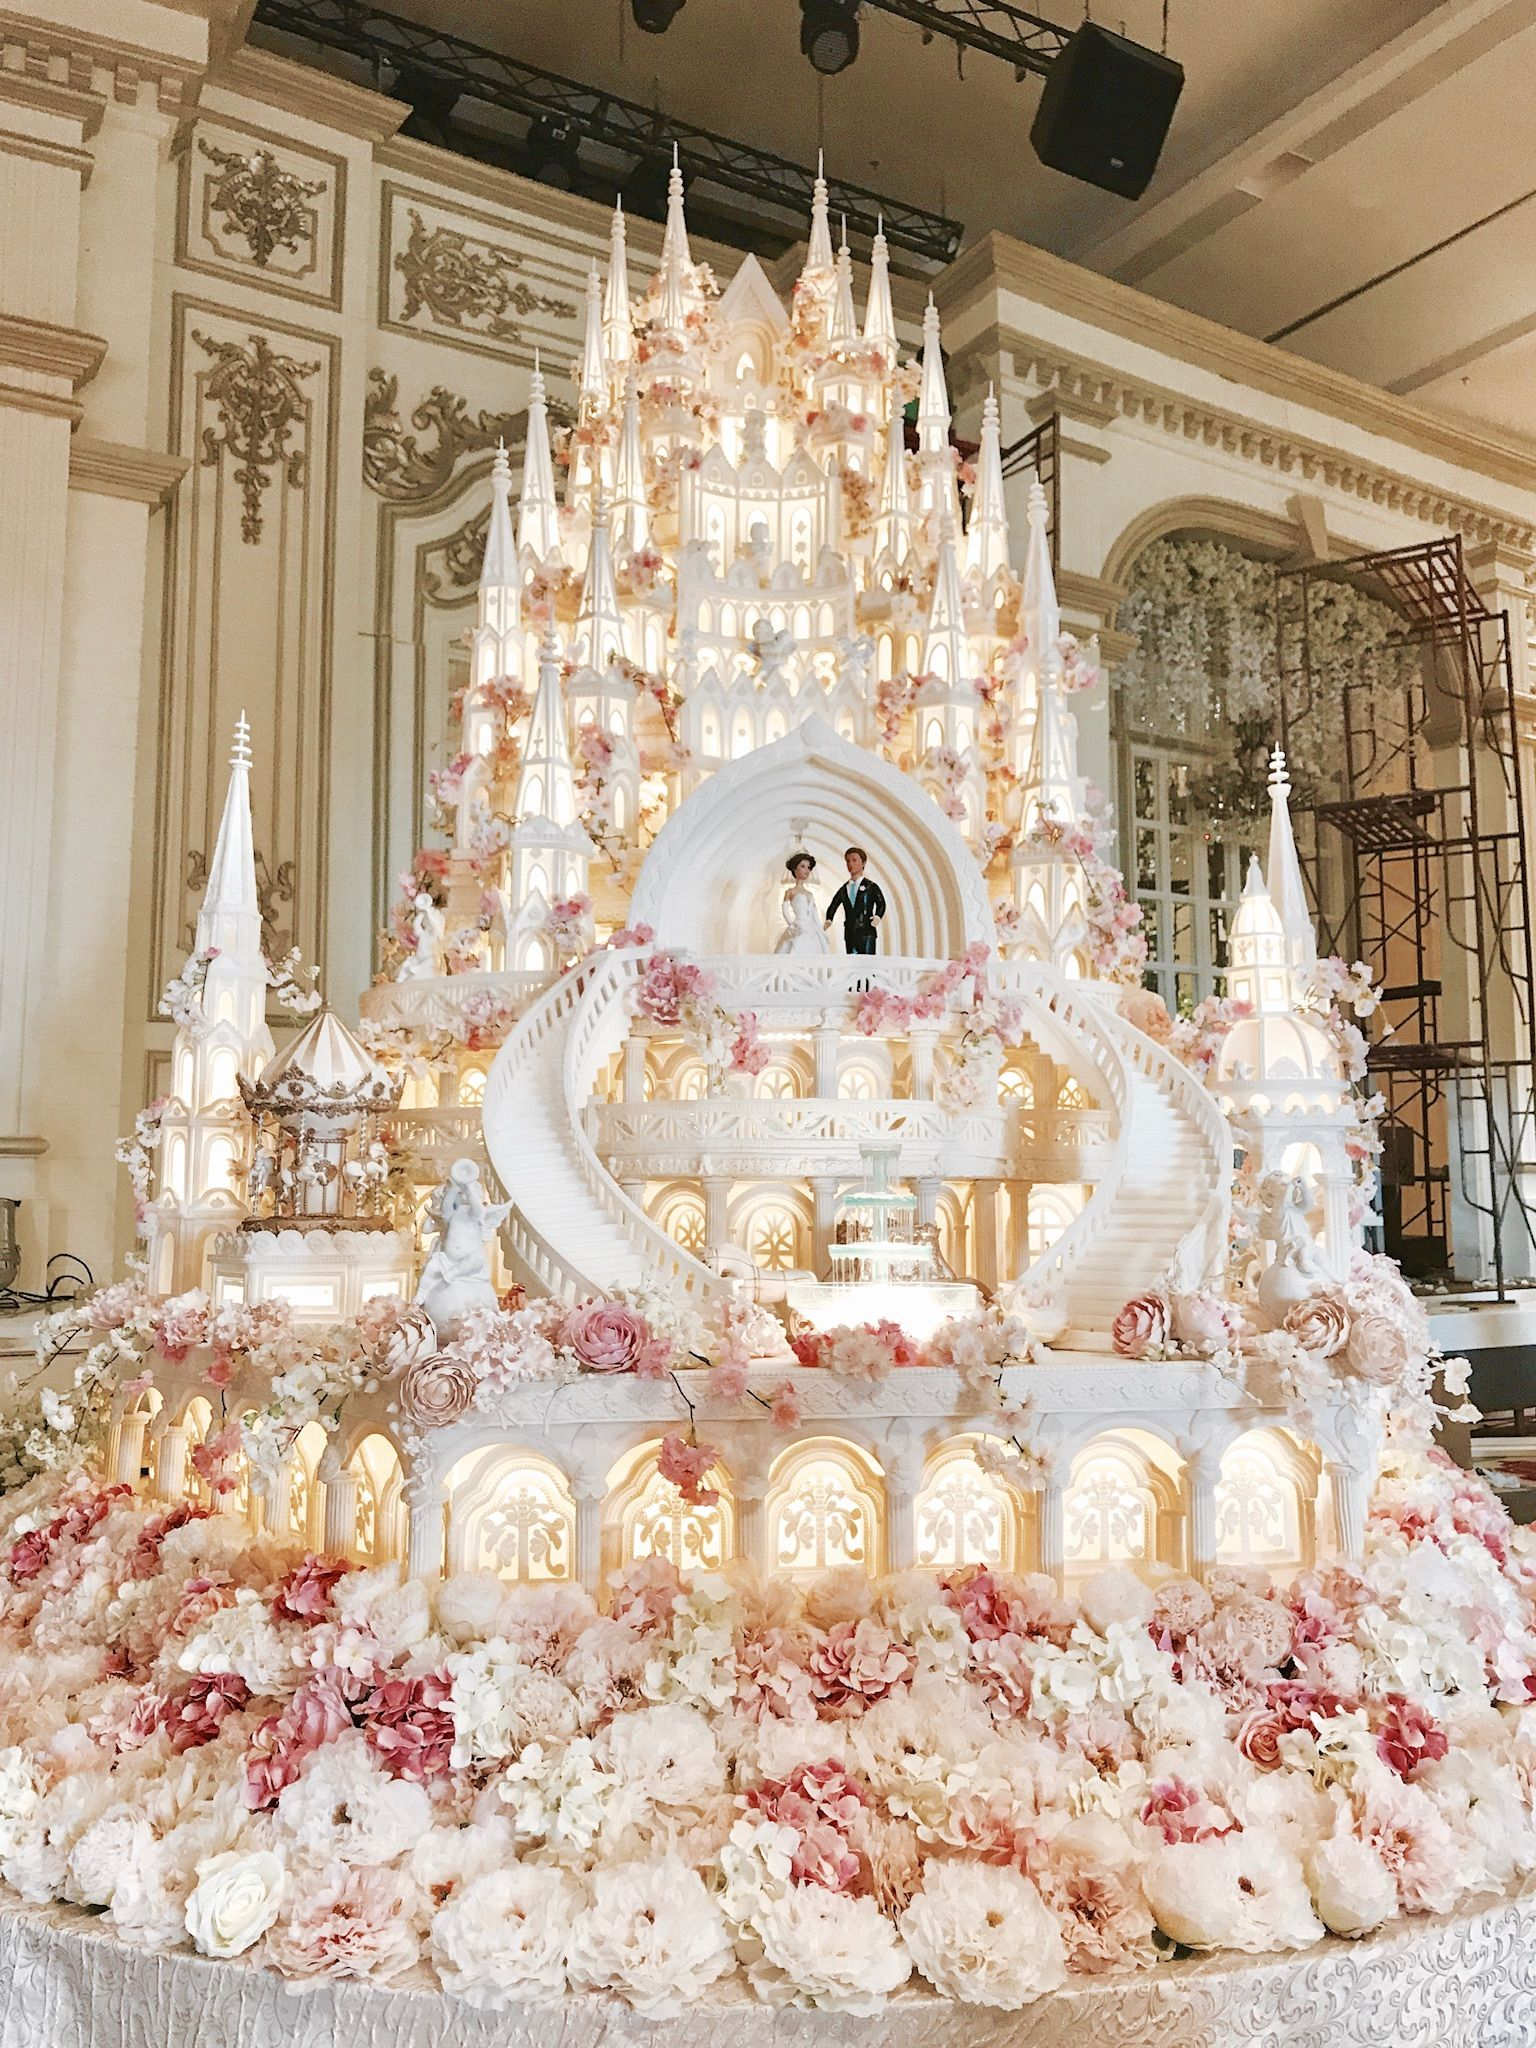 Castle Wedding Cake by Lenovelle Cake (With images